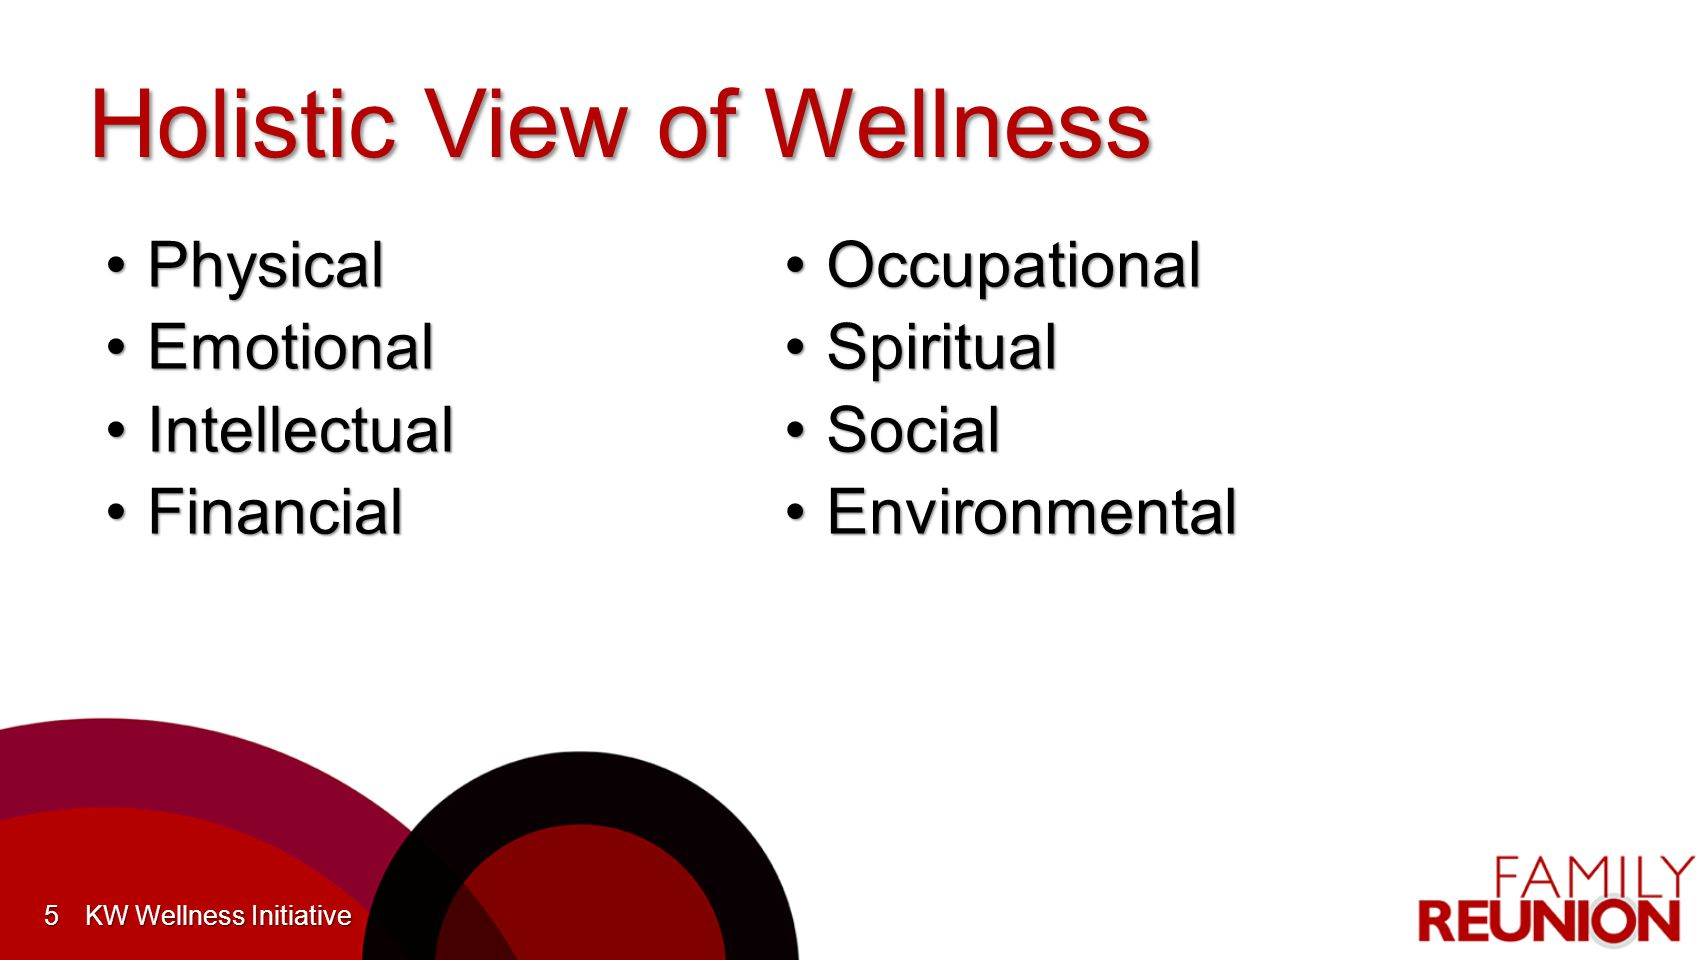 Holistic View of Wellness PhysicalPhysical EmotionalEmotional IntellectualIntellectual FinancialFinancial 5 OccupationalOccupational SpiritualSpiritual SocialSocial EnvironmentalEnvironmental KW Wellness Initiative